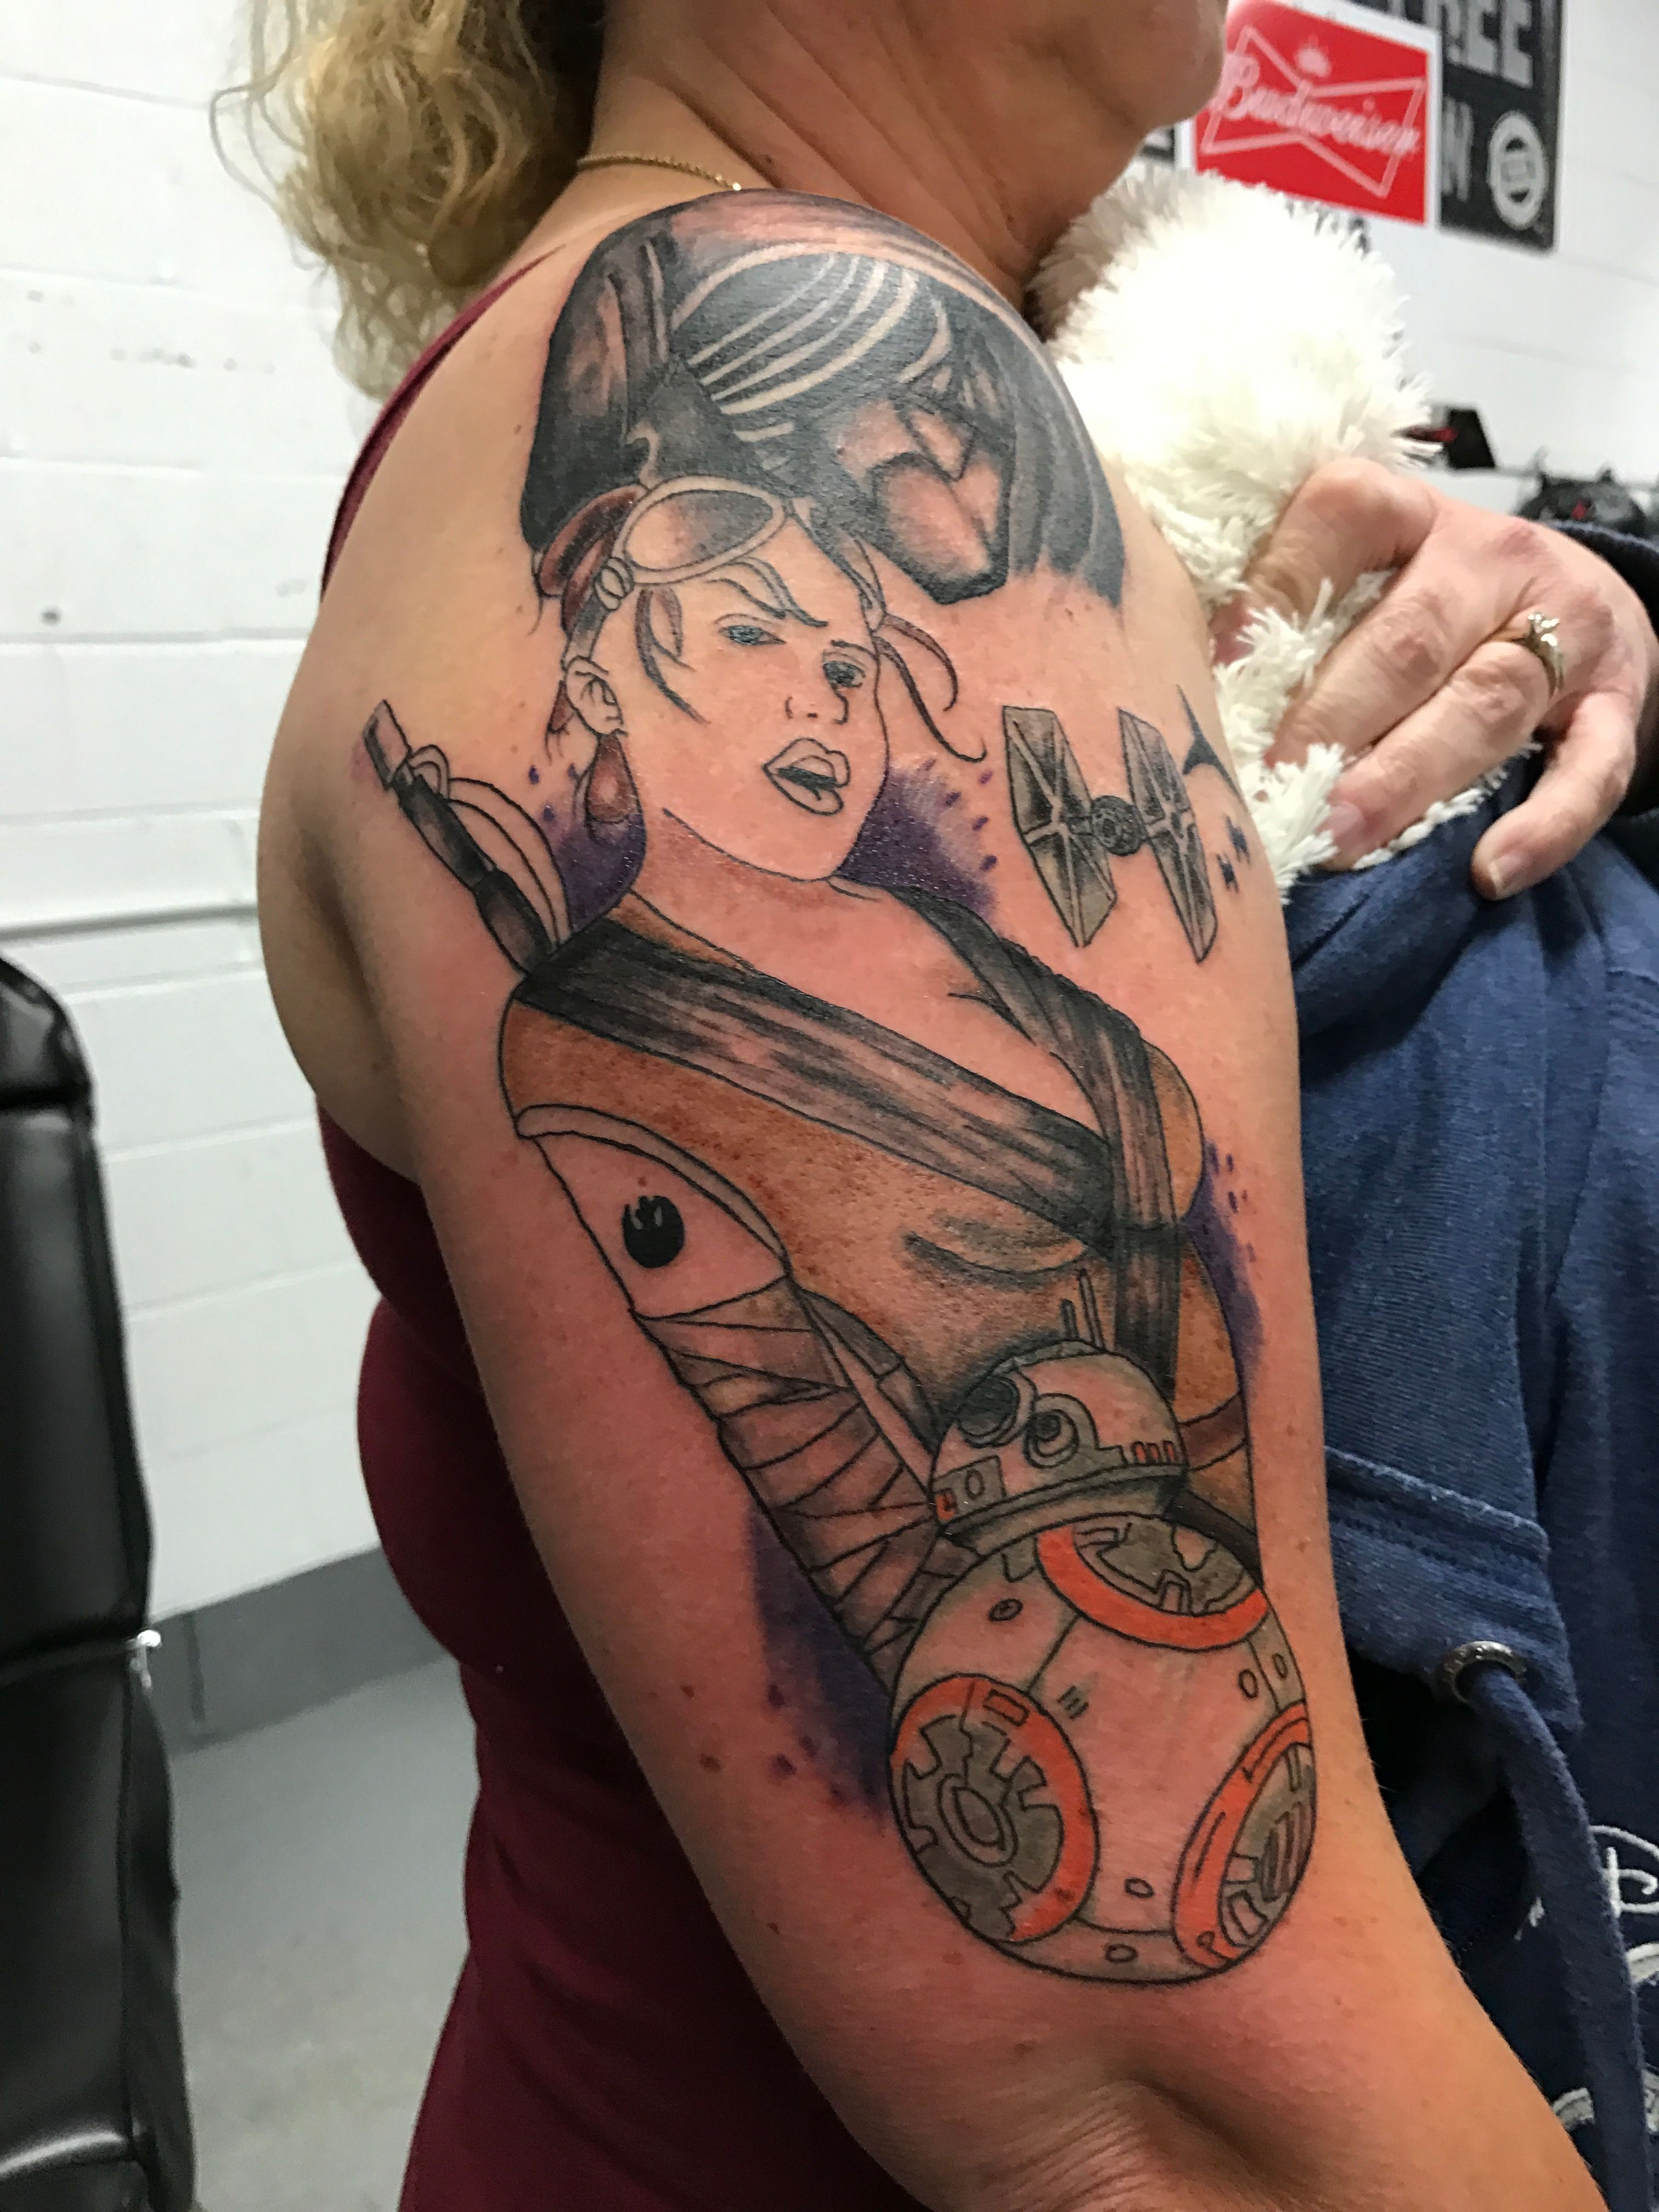 Tattoo By Price At Big City Body Art Ideas For Next